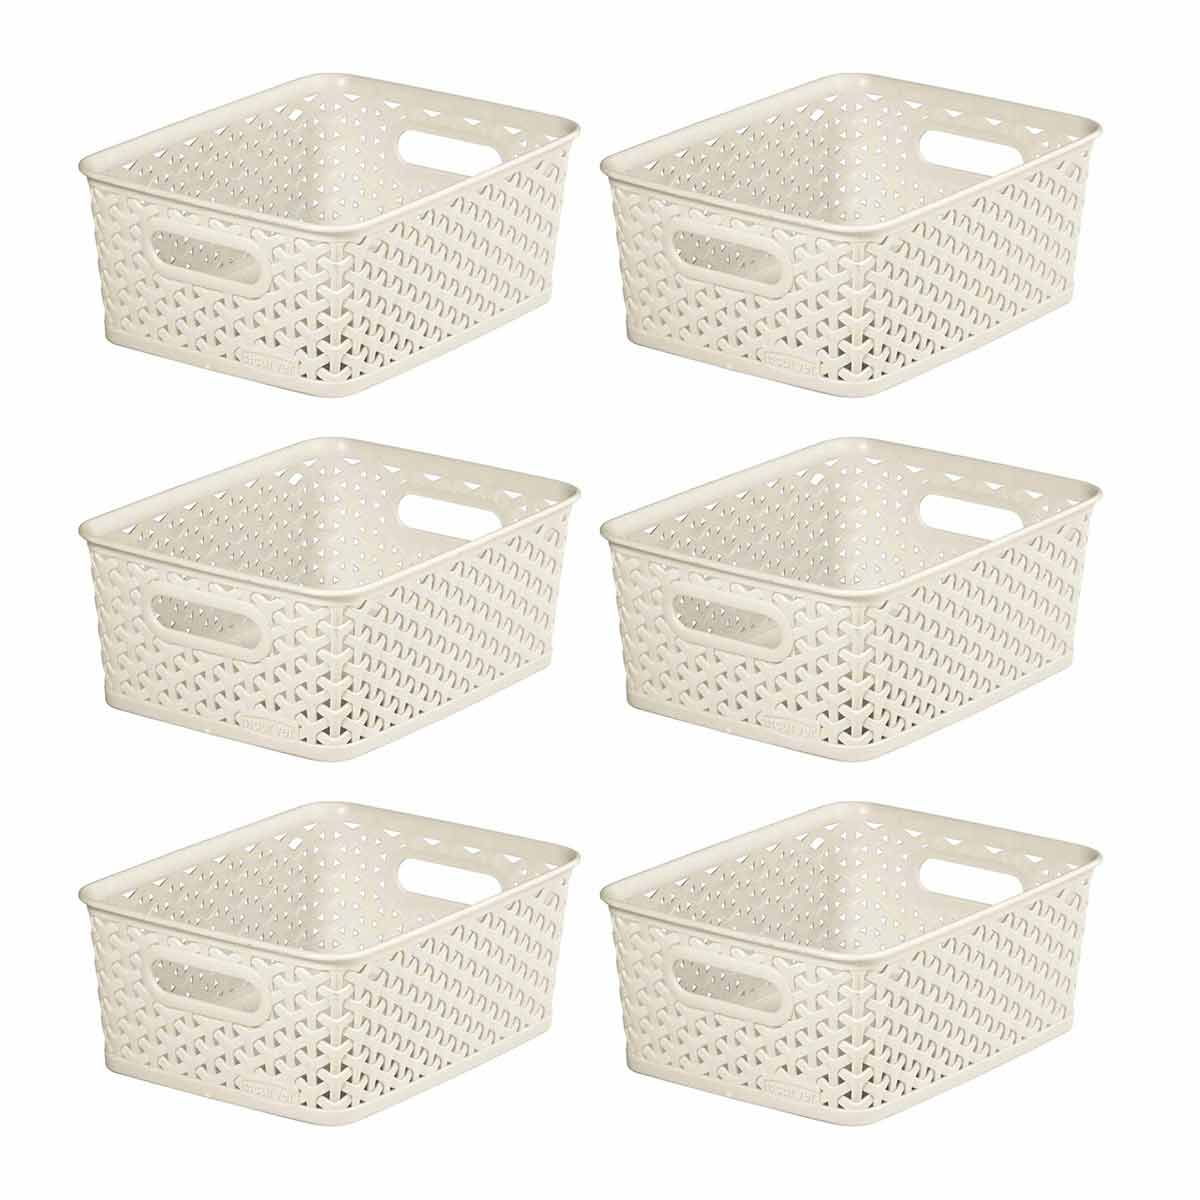 Curver My Style Storage Basket 8 Litres Pack of 6, Cream